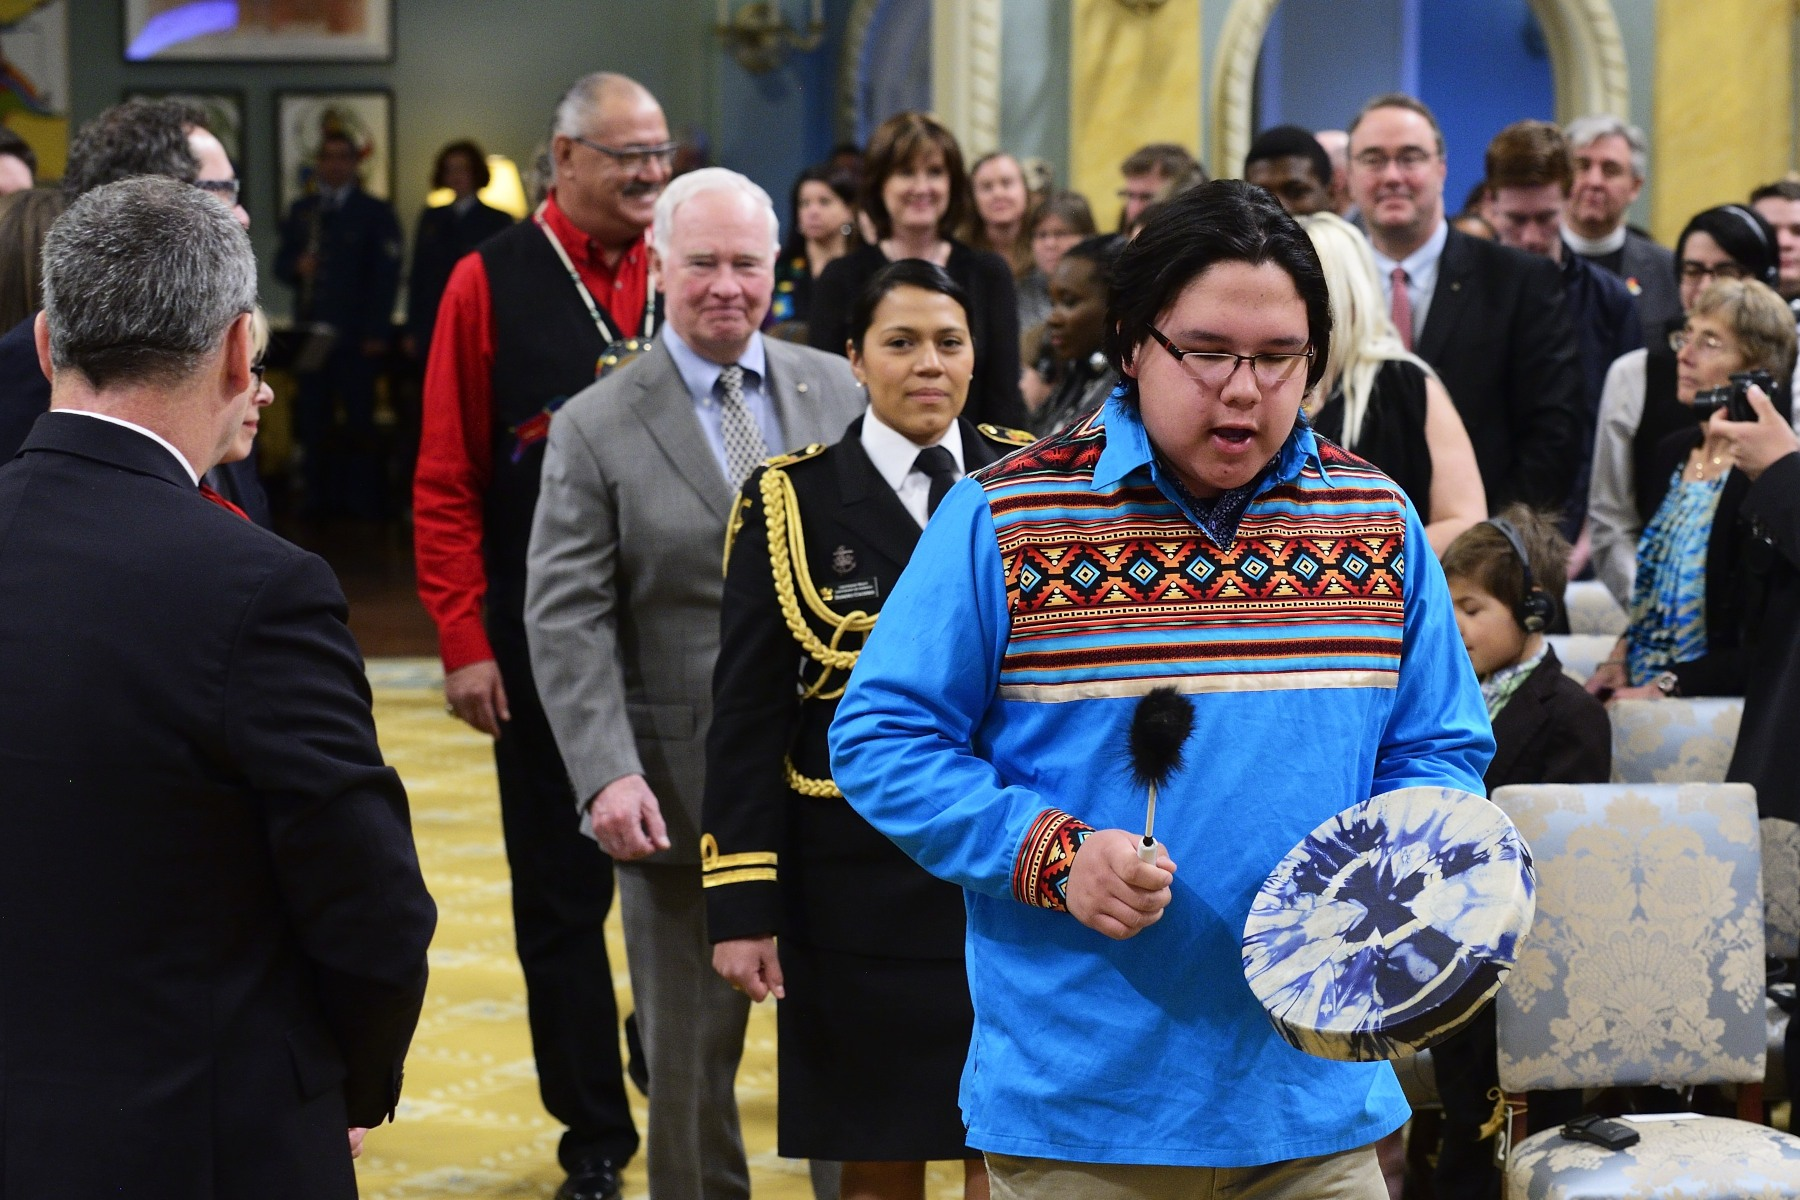 Isaac Henson, First Nation drummer, led a procession that included the Governor General and Mr. Eugène Arcand, Indian Residential School survivor and member of the Governing Circle of the National Center for Truth and Reconciliation (NCTR), on the occasion of the inaugural Imagine a Canada ceremony held at Rideau Hall.